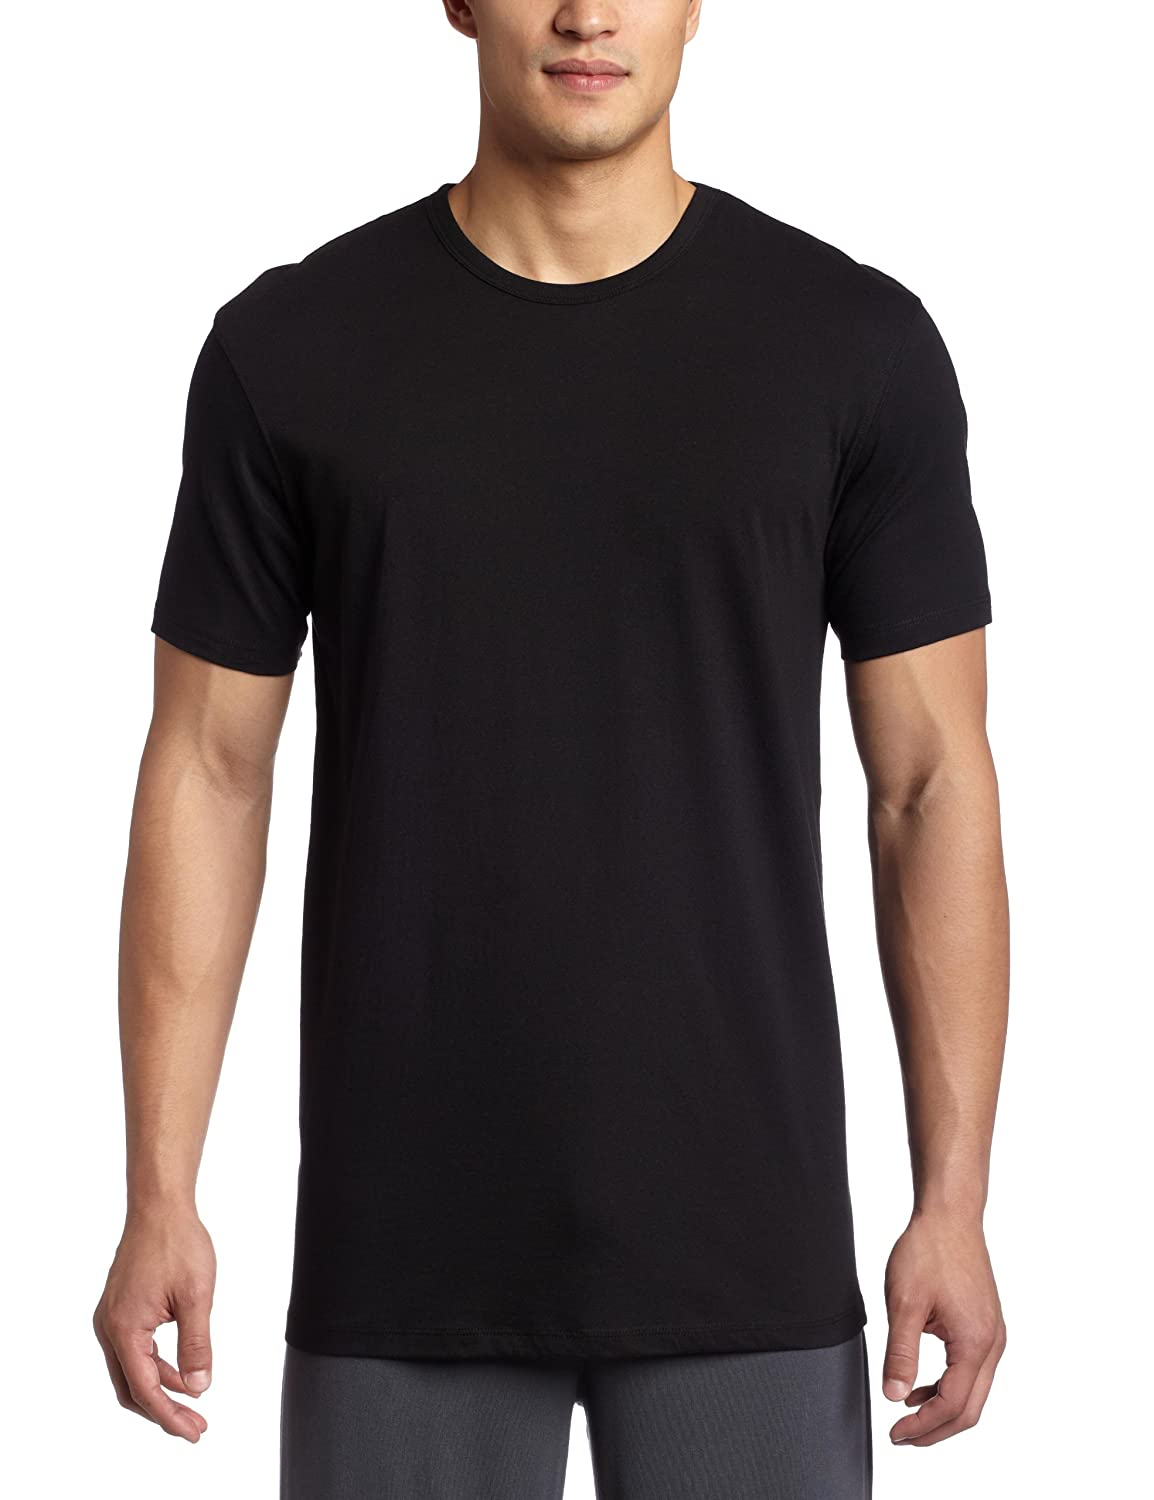 Black t shirt design template - Black T Shirt Template Images Free Download